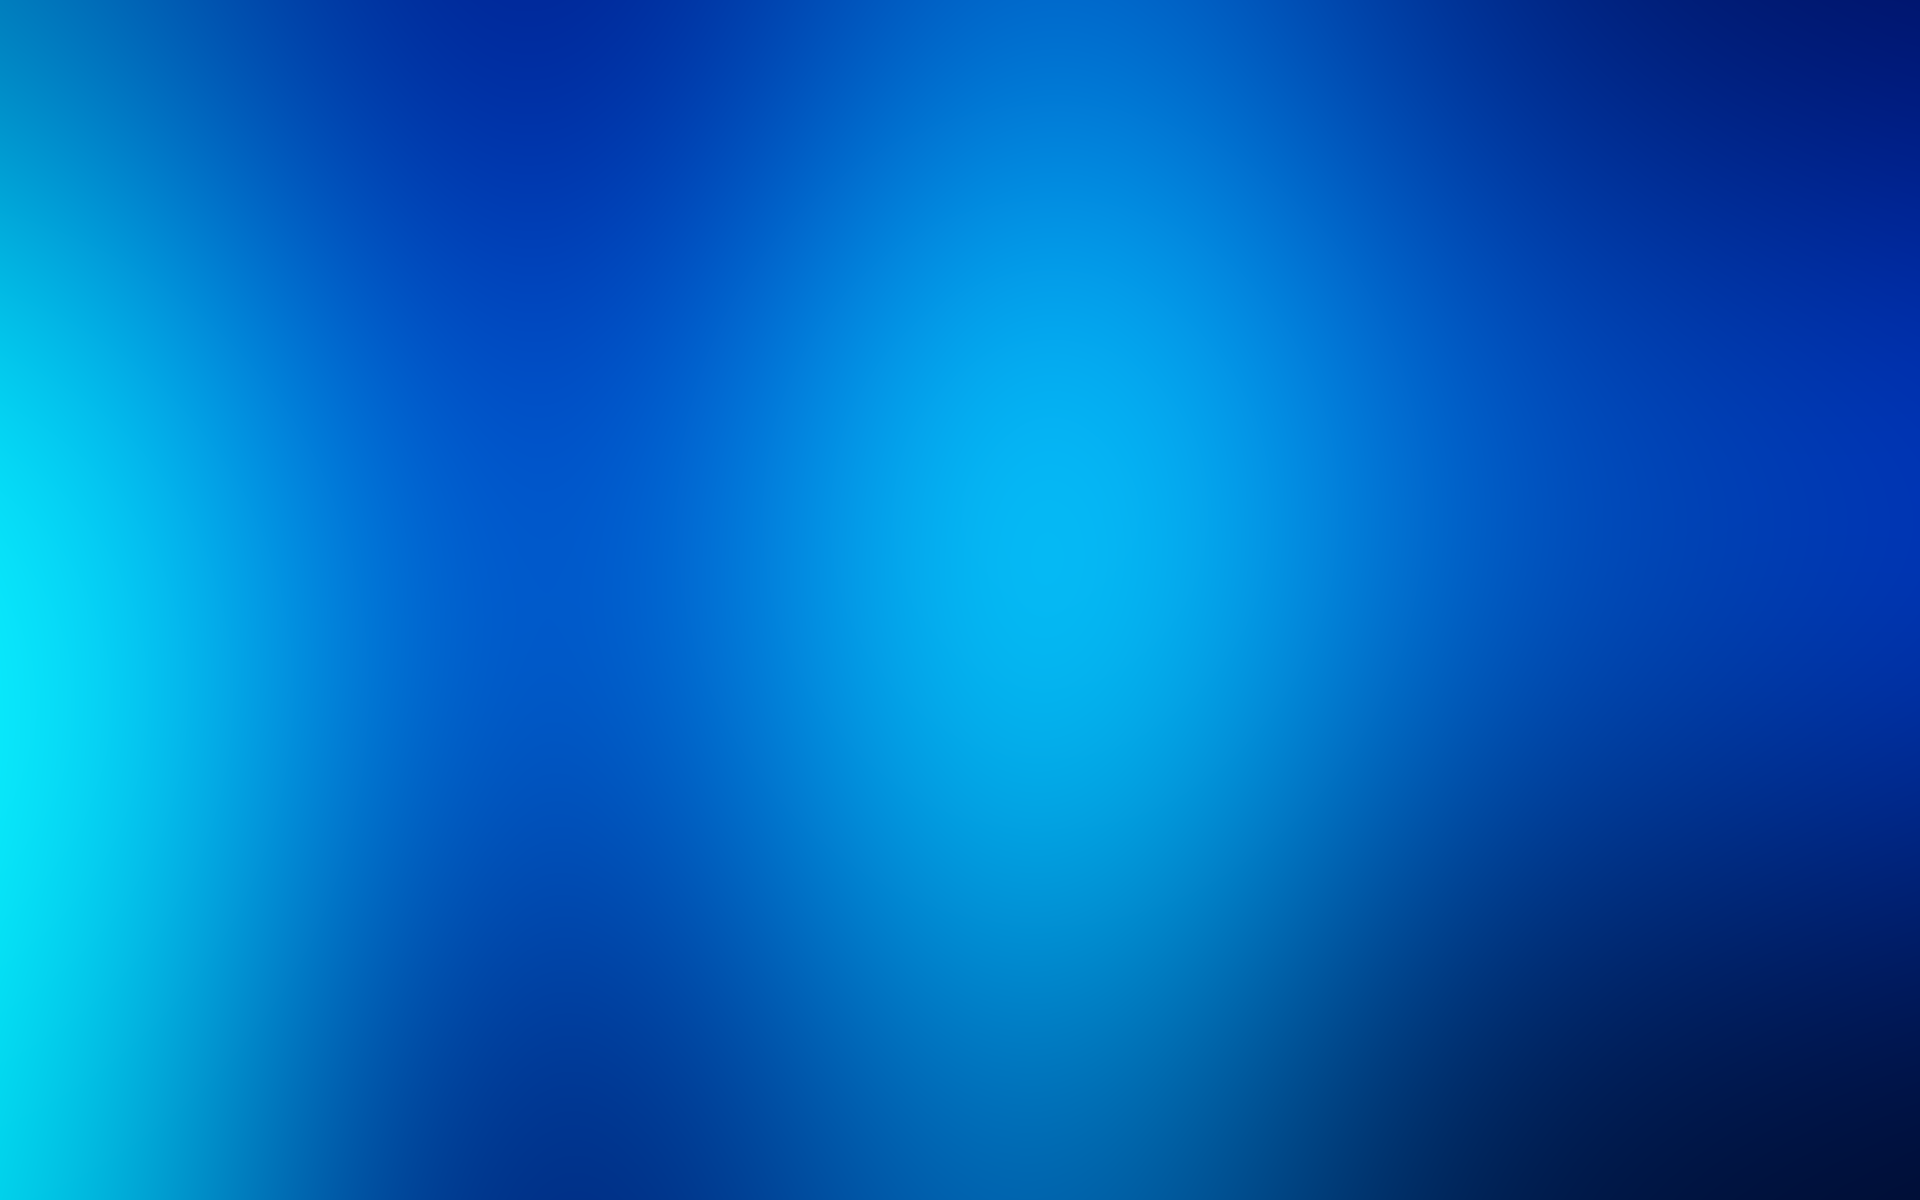 77 Blue Background Images On Wallpapersafari